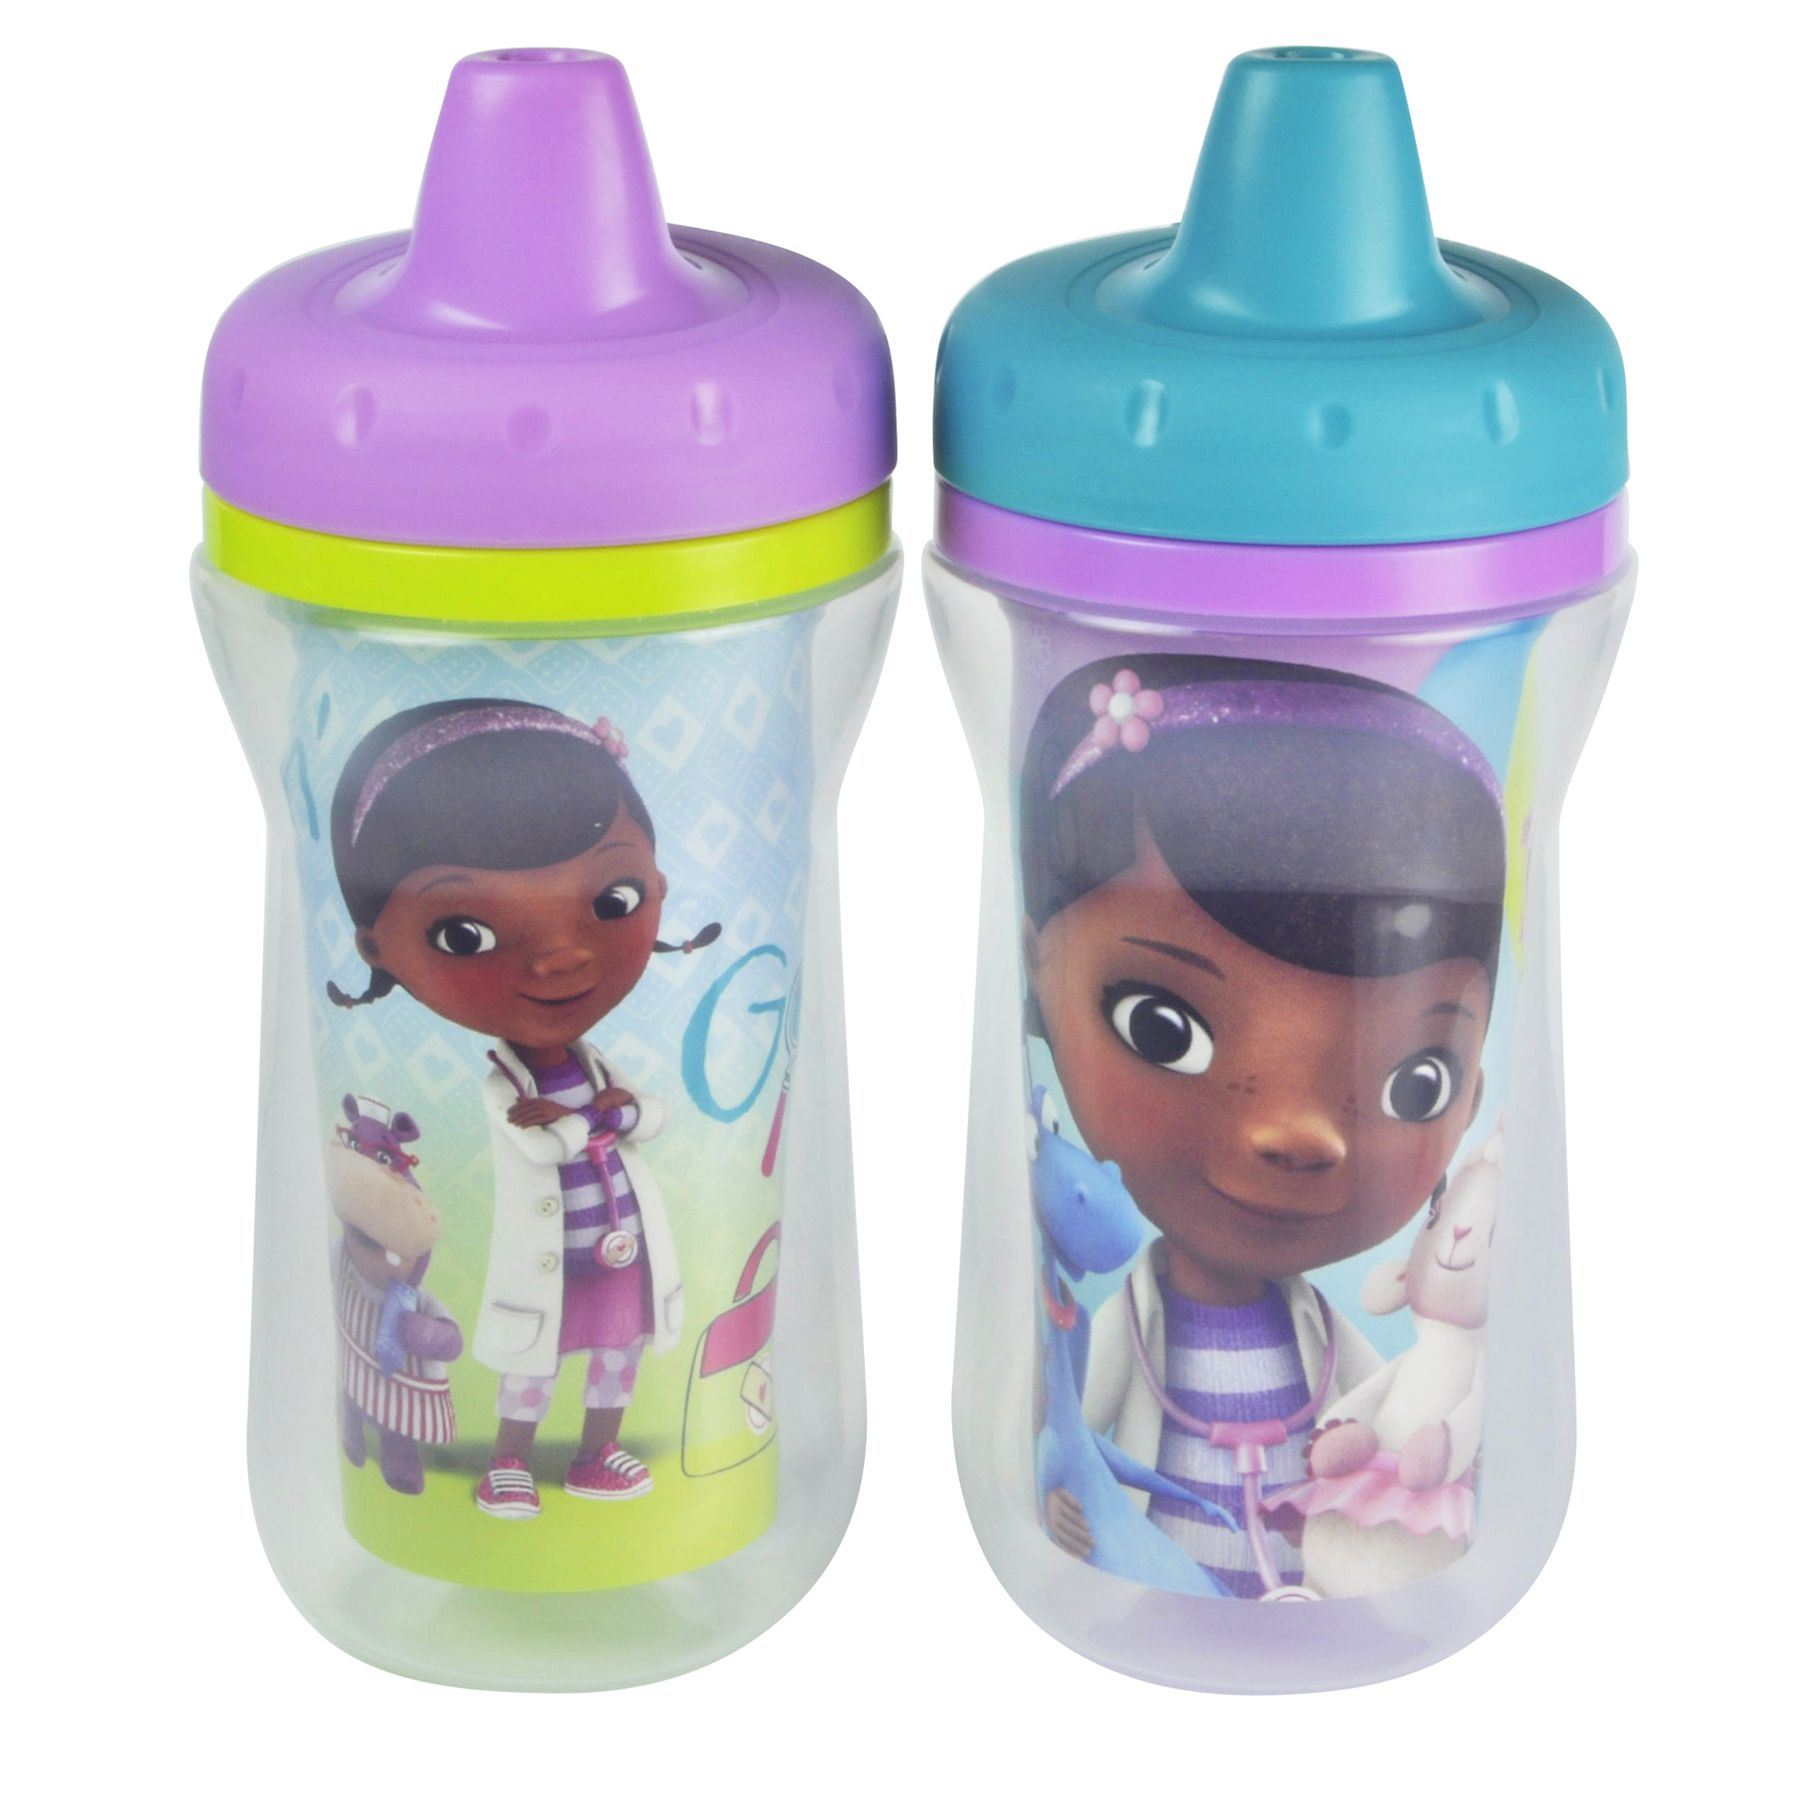 Doc Mcstuffins 2 Pack Insulated Spill Proof Sippy Cups With One Piece Lid From The First Years Toddler Sippy Cups Sippy Cup Baby Disney